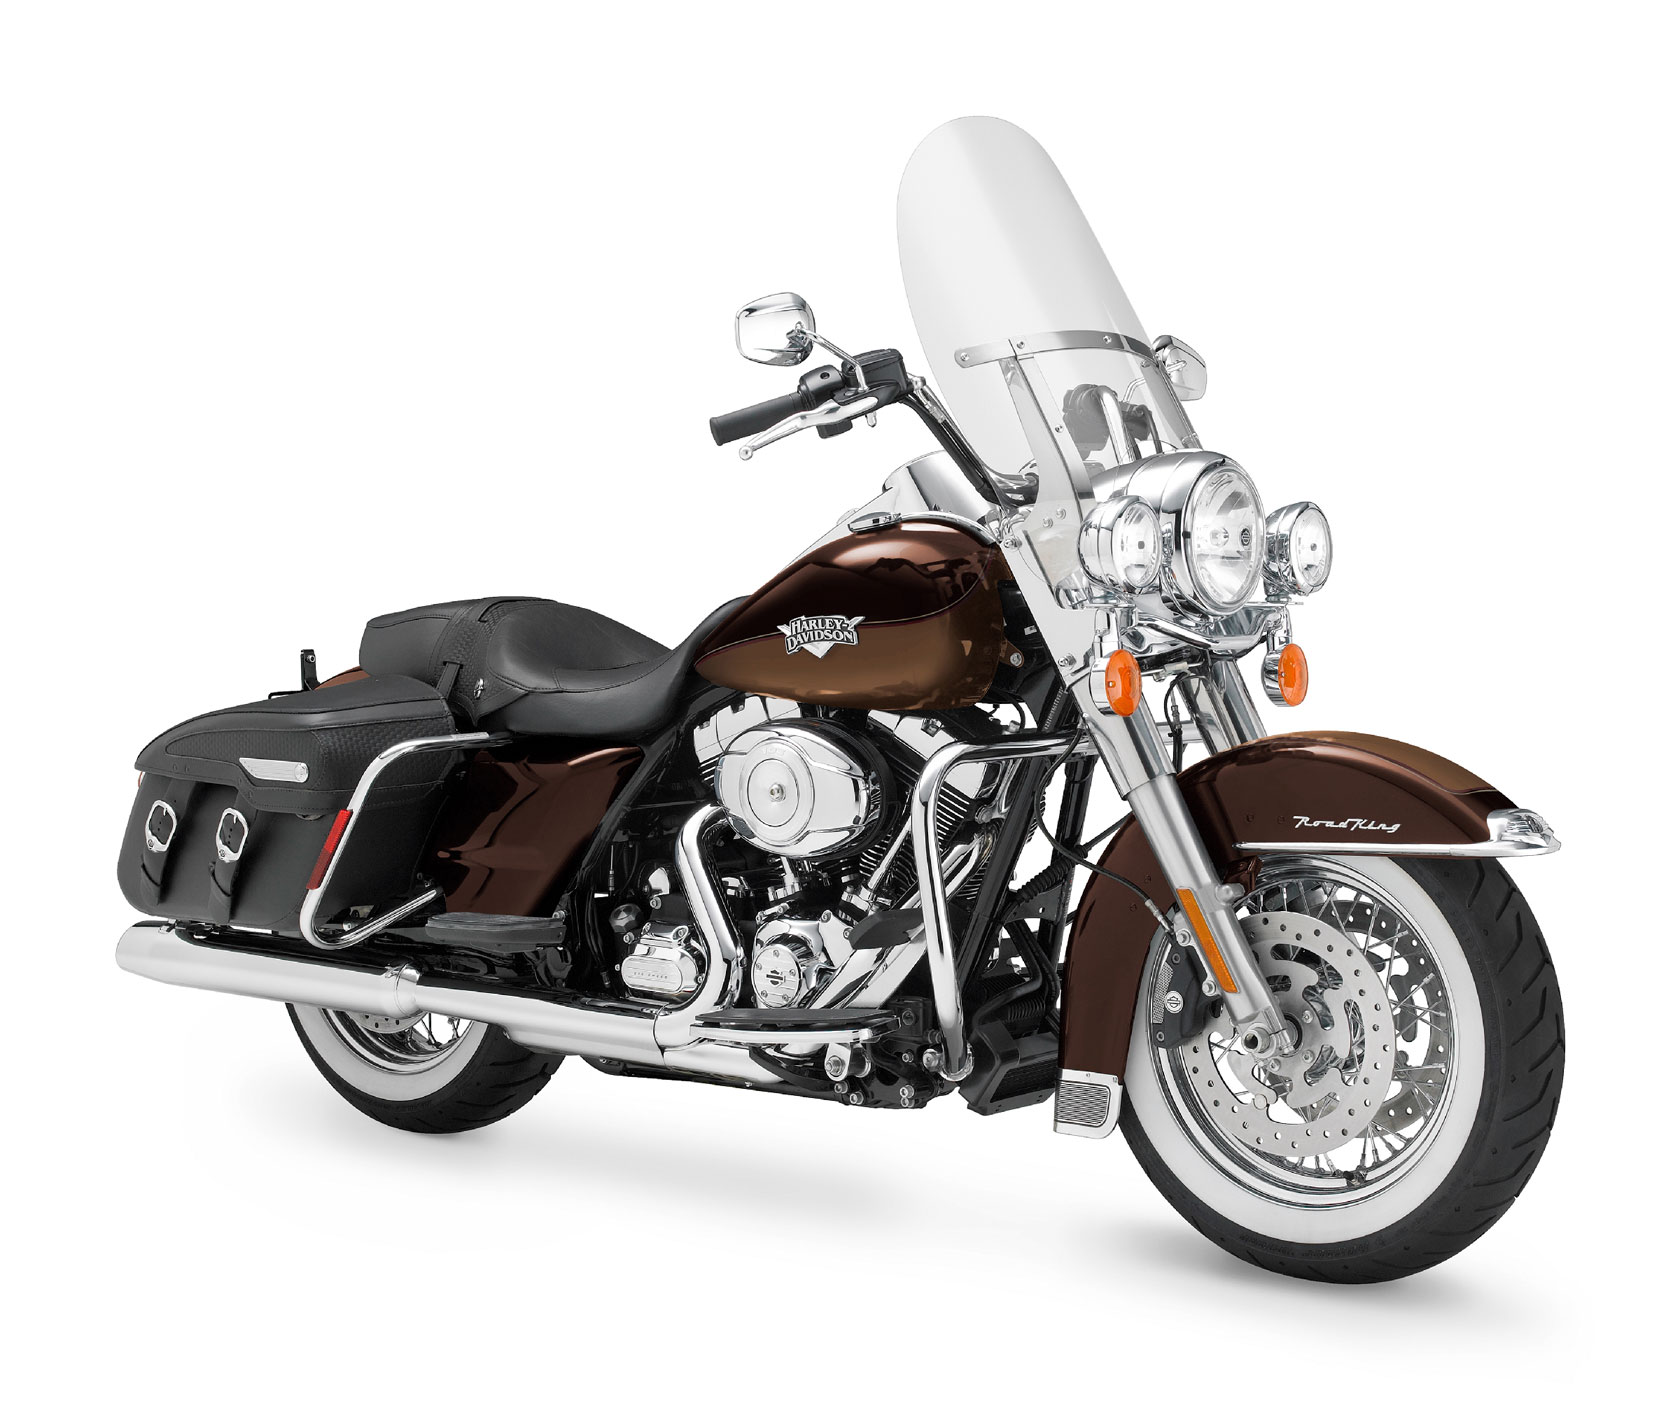 HARLEY DAVIDSON Road King Classic Specs